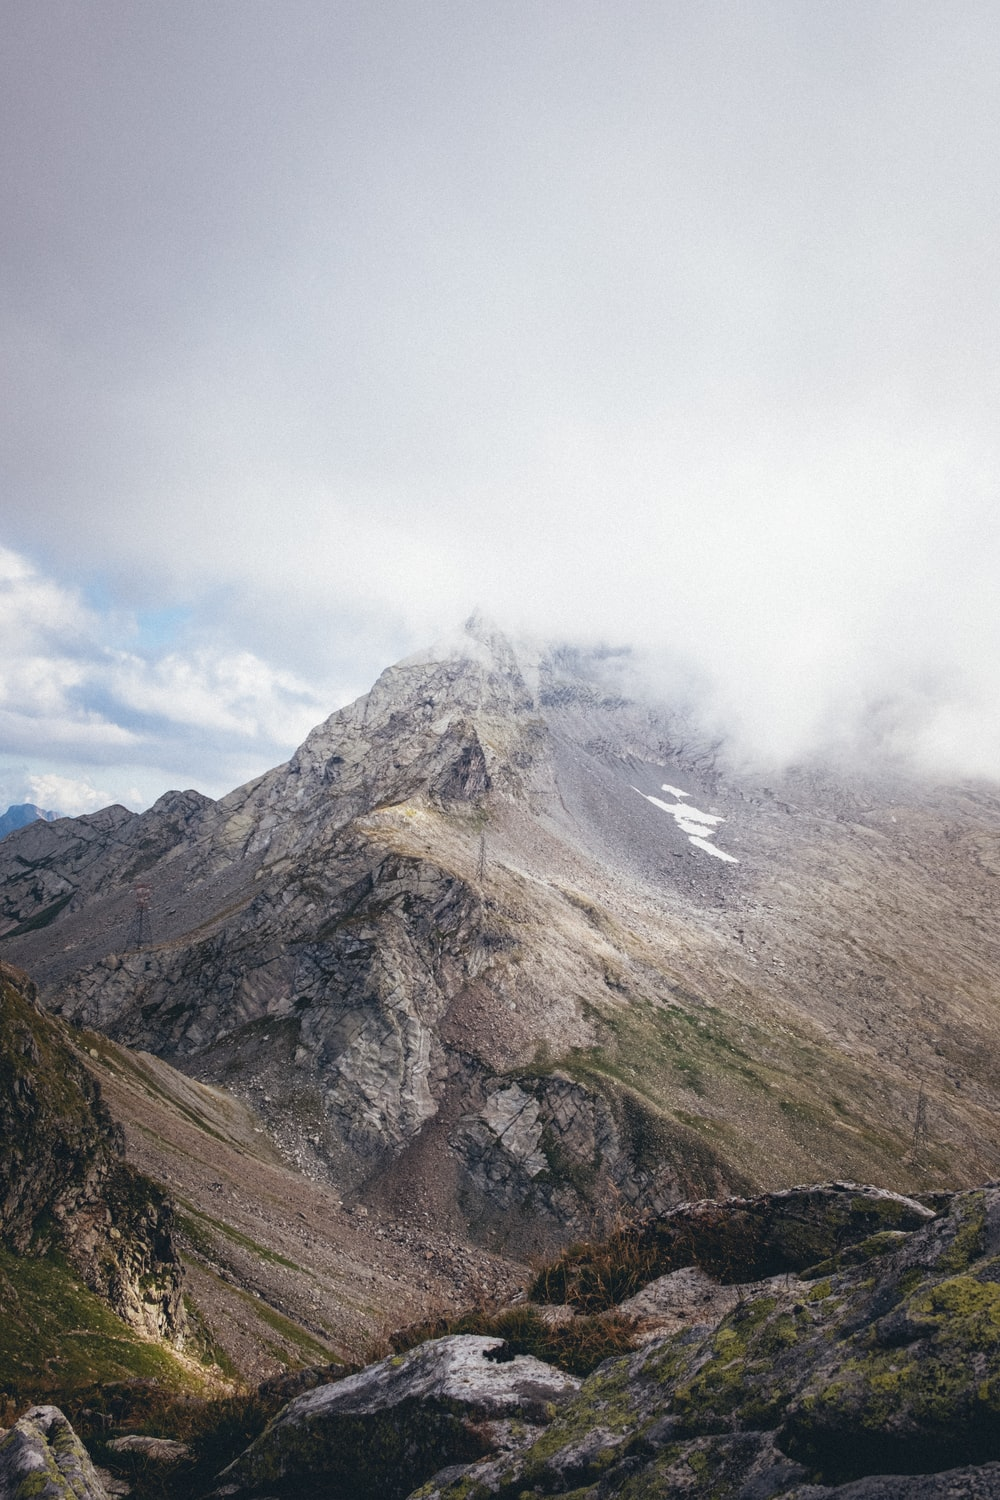 gray and brown mountain under white clouds during daytime